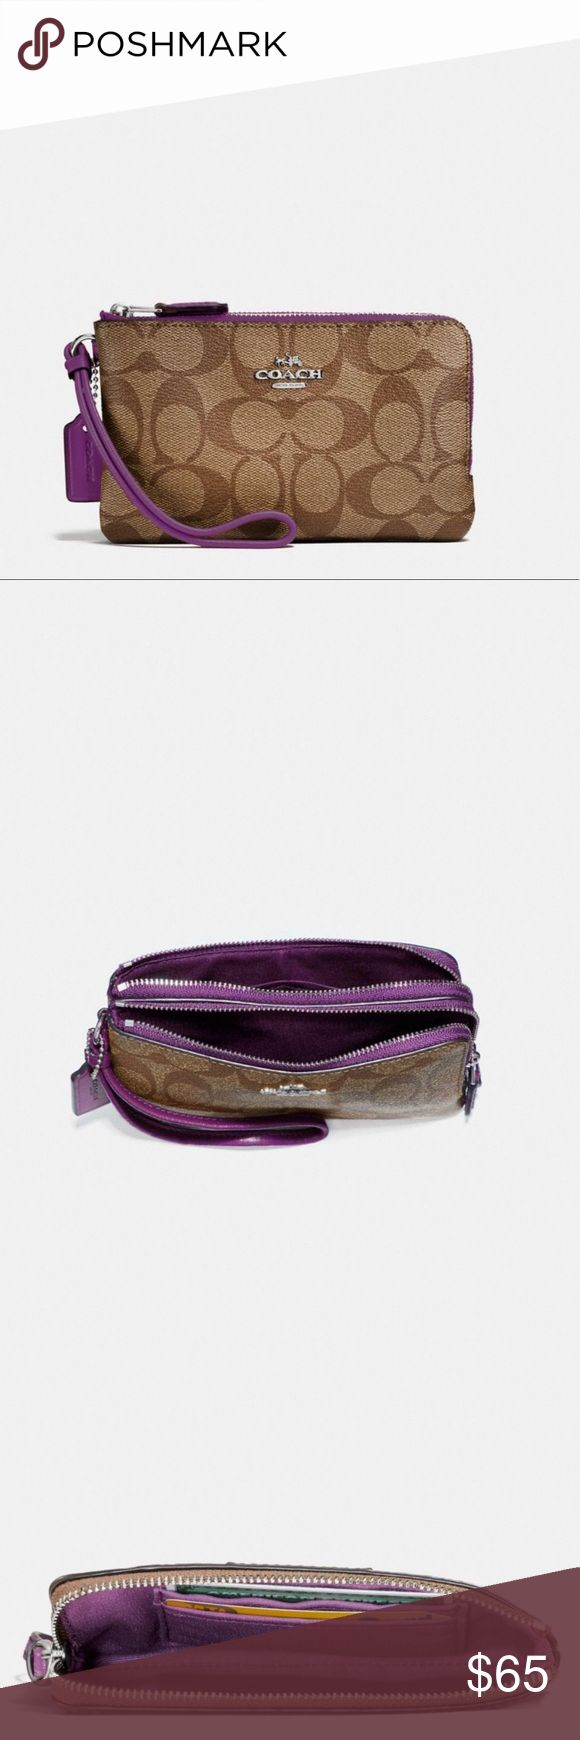 💜NWT Double Corner Zip Coach Wristlet💜 Brand New with tags! Real leather Perfect size with double zipper (6 inches length x 4 inches height) One side is an open pocket and the other zipper is an open pocket with 2 credit card inserts💳📱 Coach Bags Clutches & Wristlets